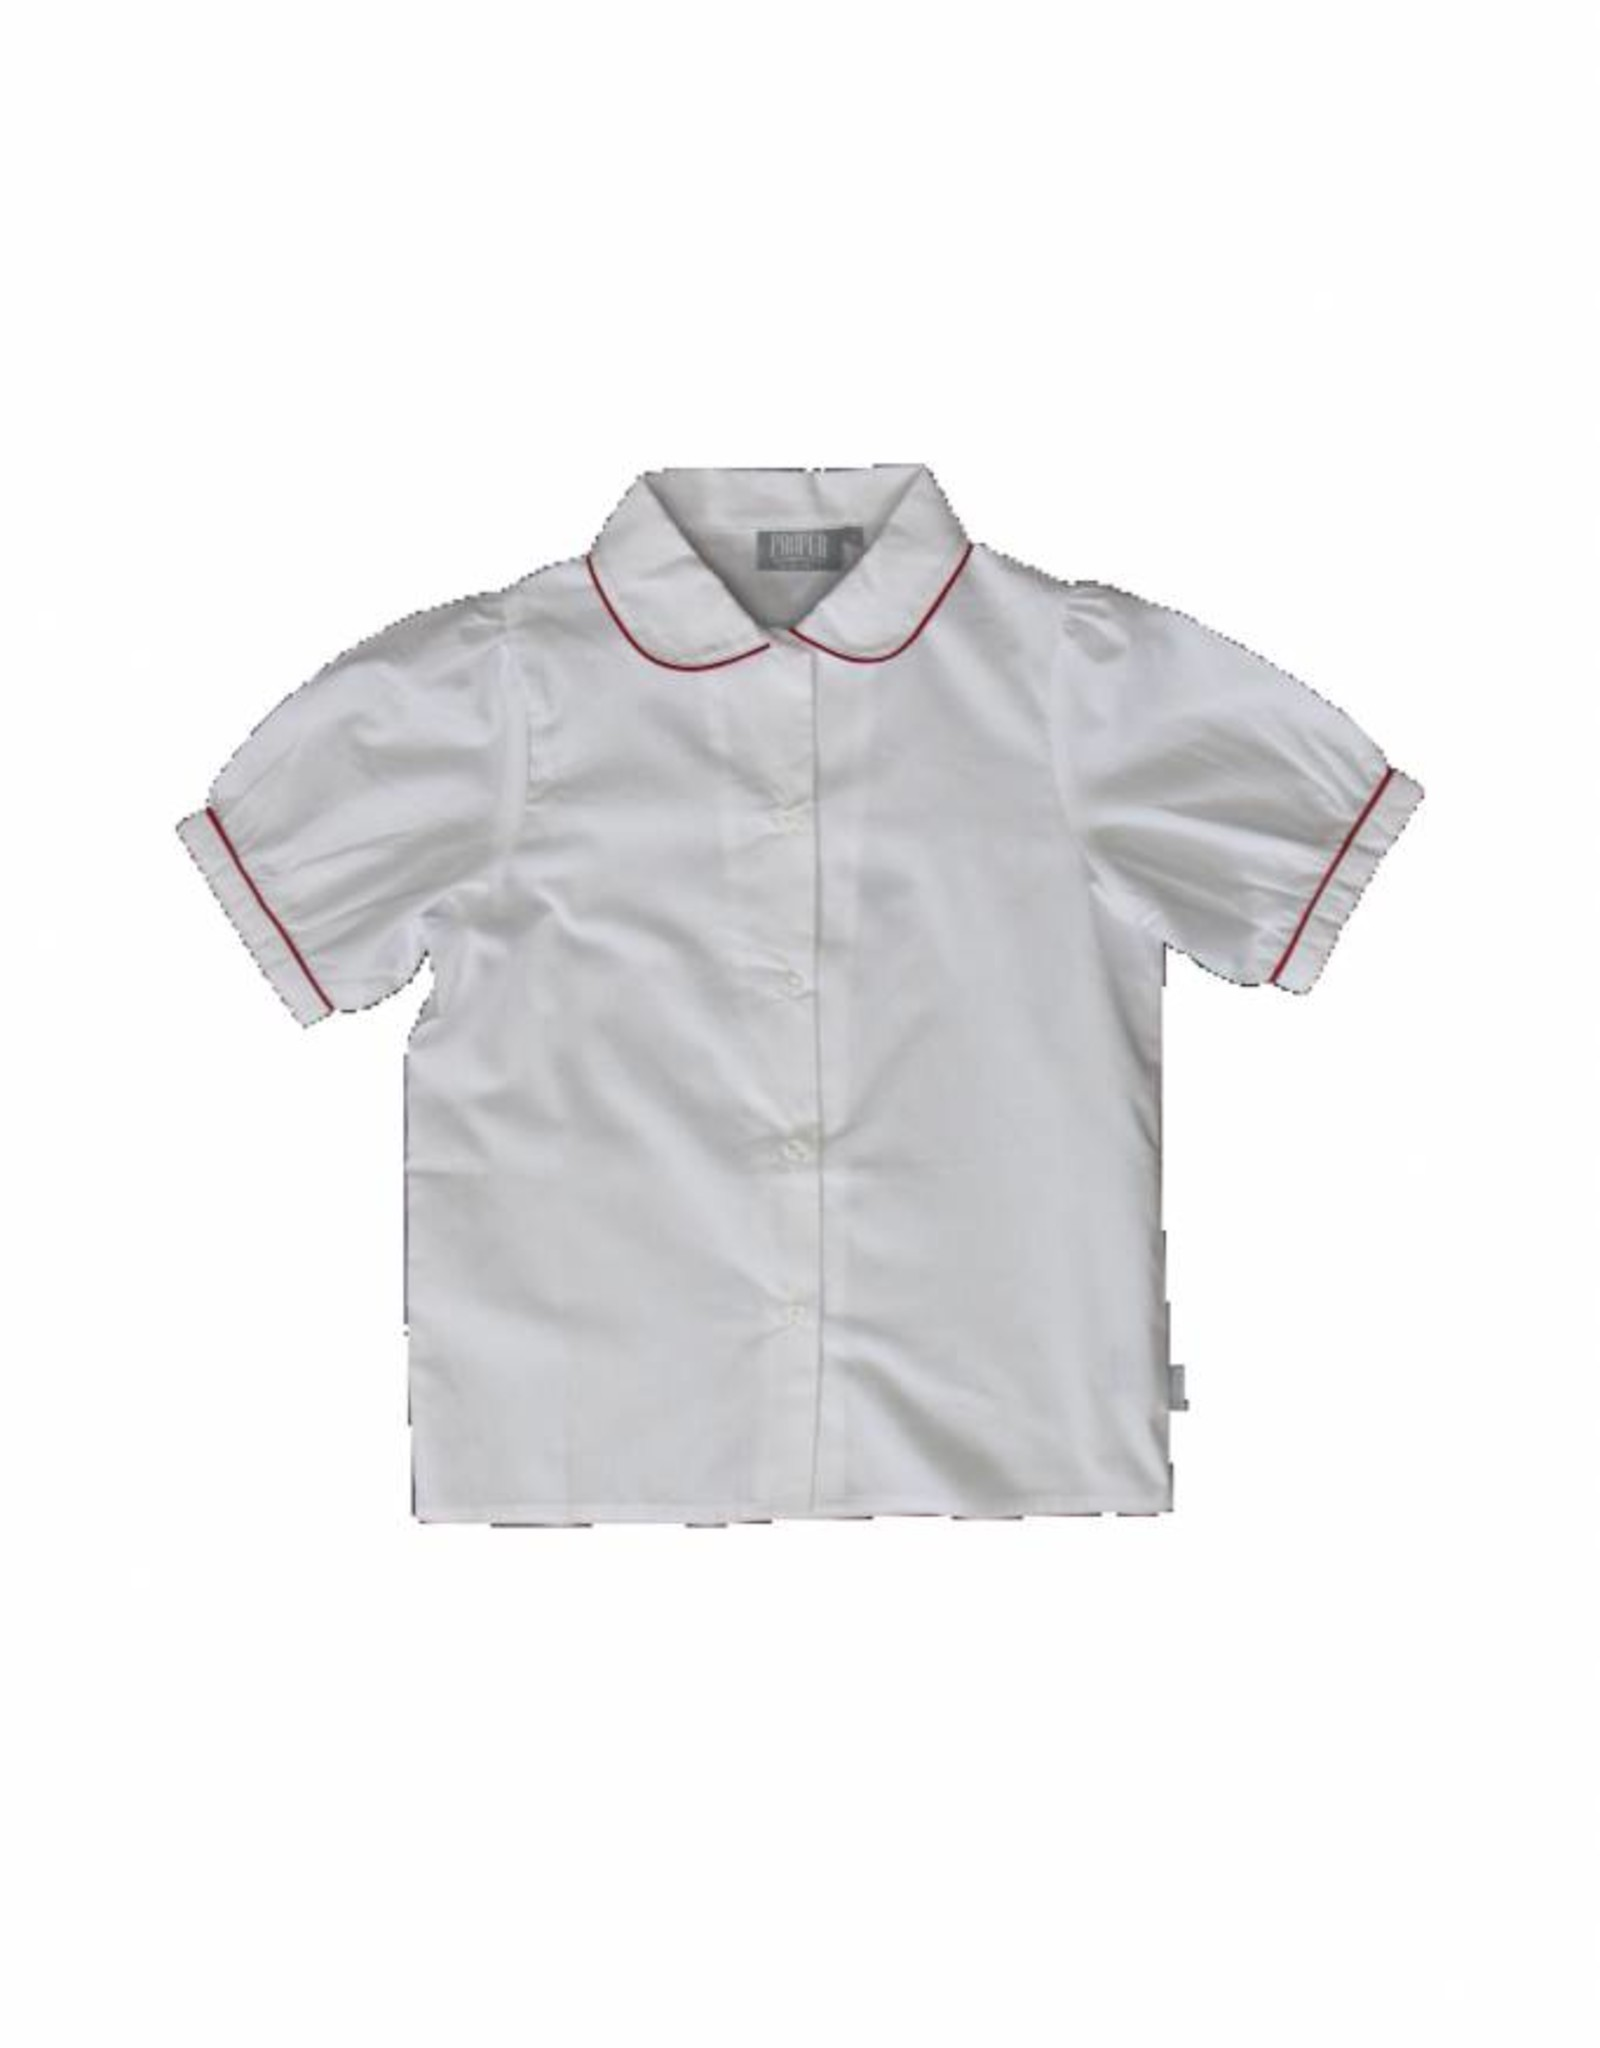 Proper Uniforms SHIRT-White w/Red Piping Toddler